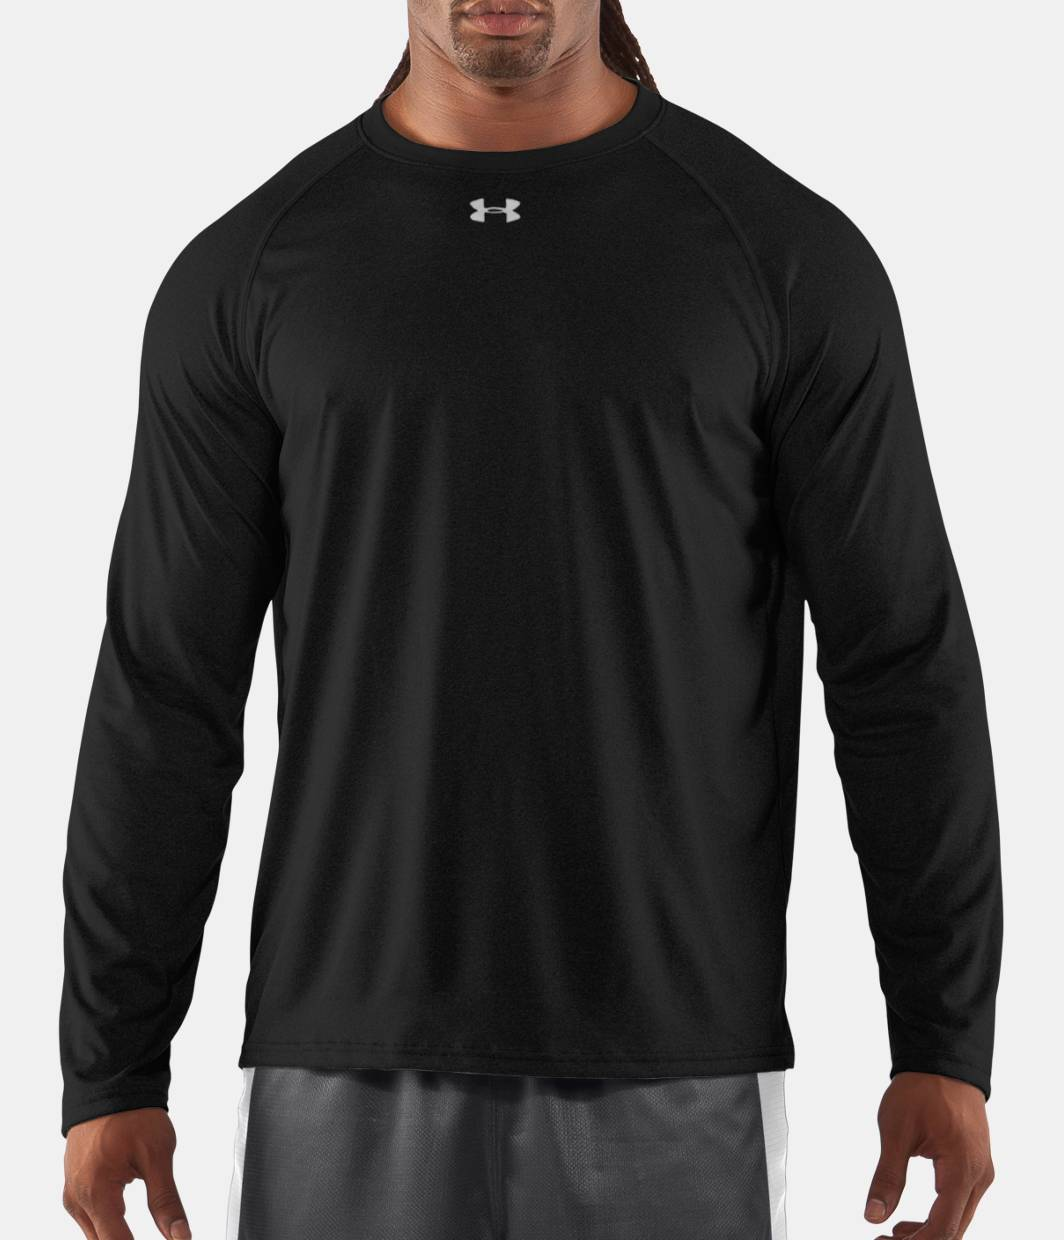 men s ua locker long sleeve t shirt under armour ca ForMen S Ua Locker Long Sleeve T Shirt